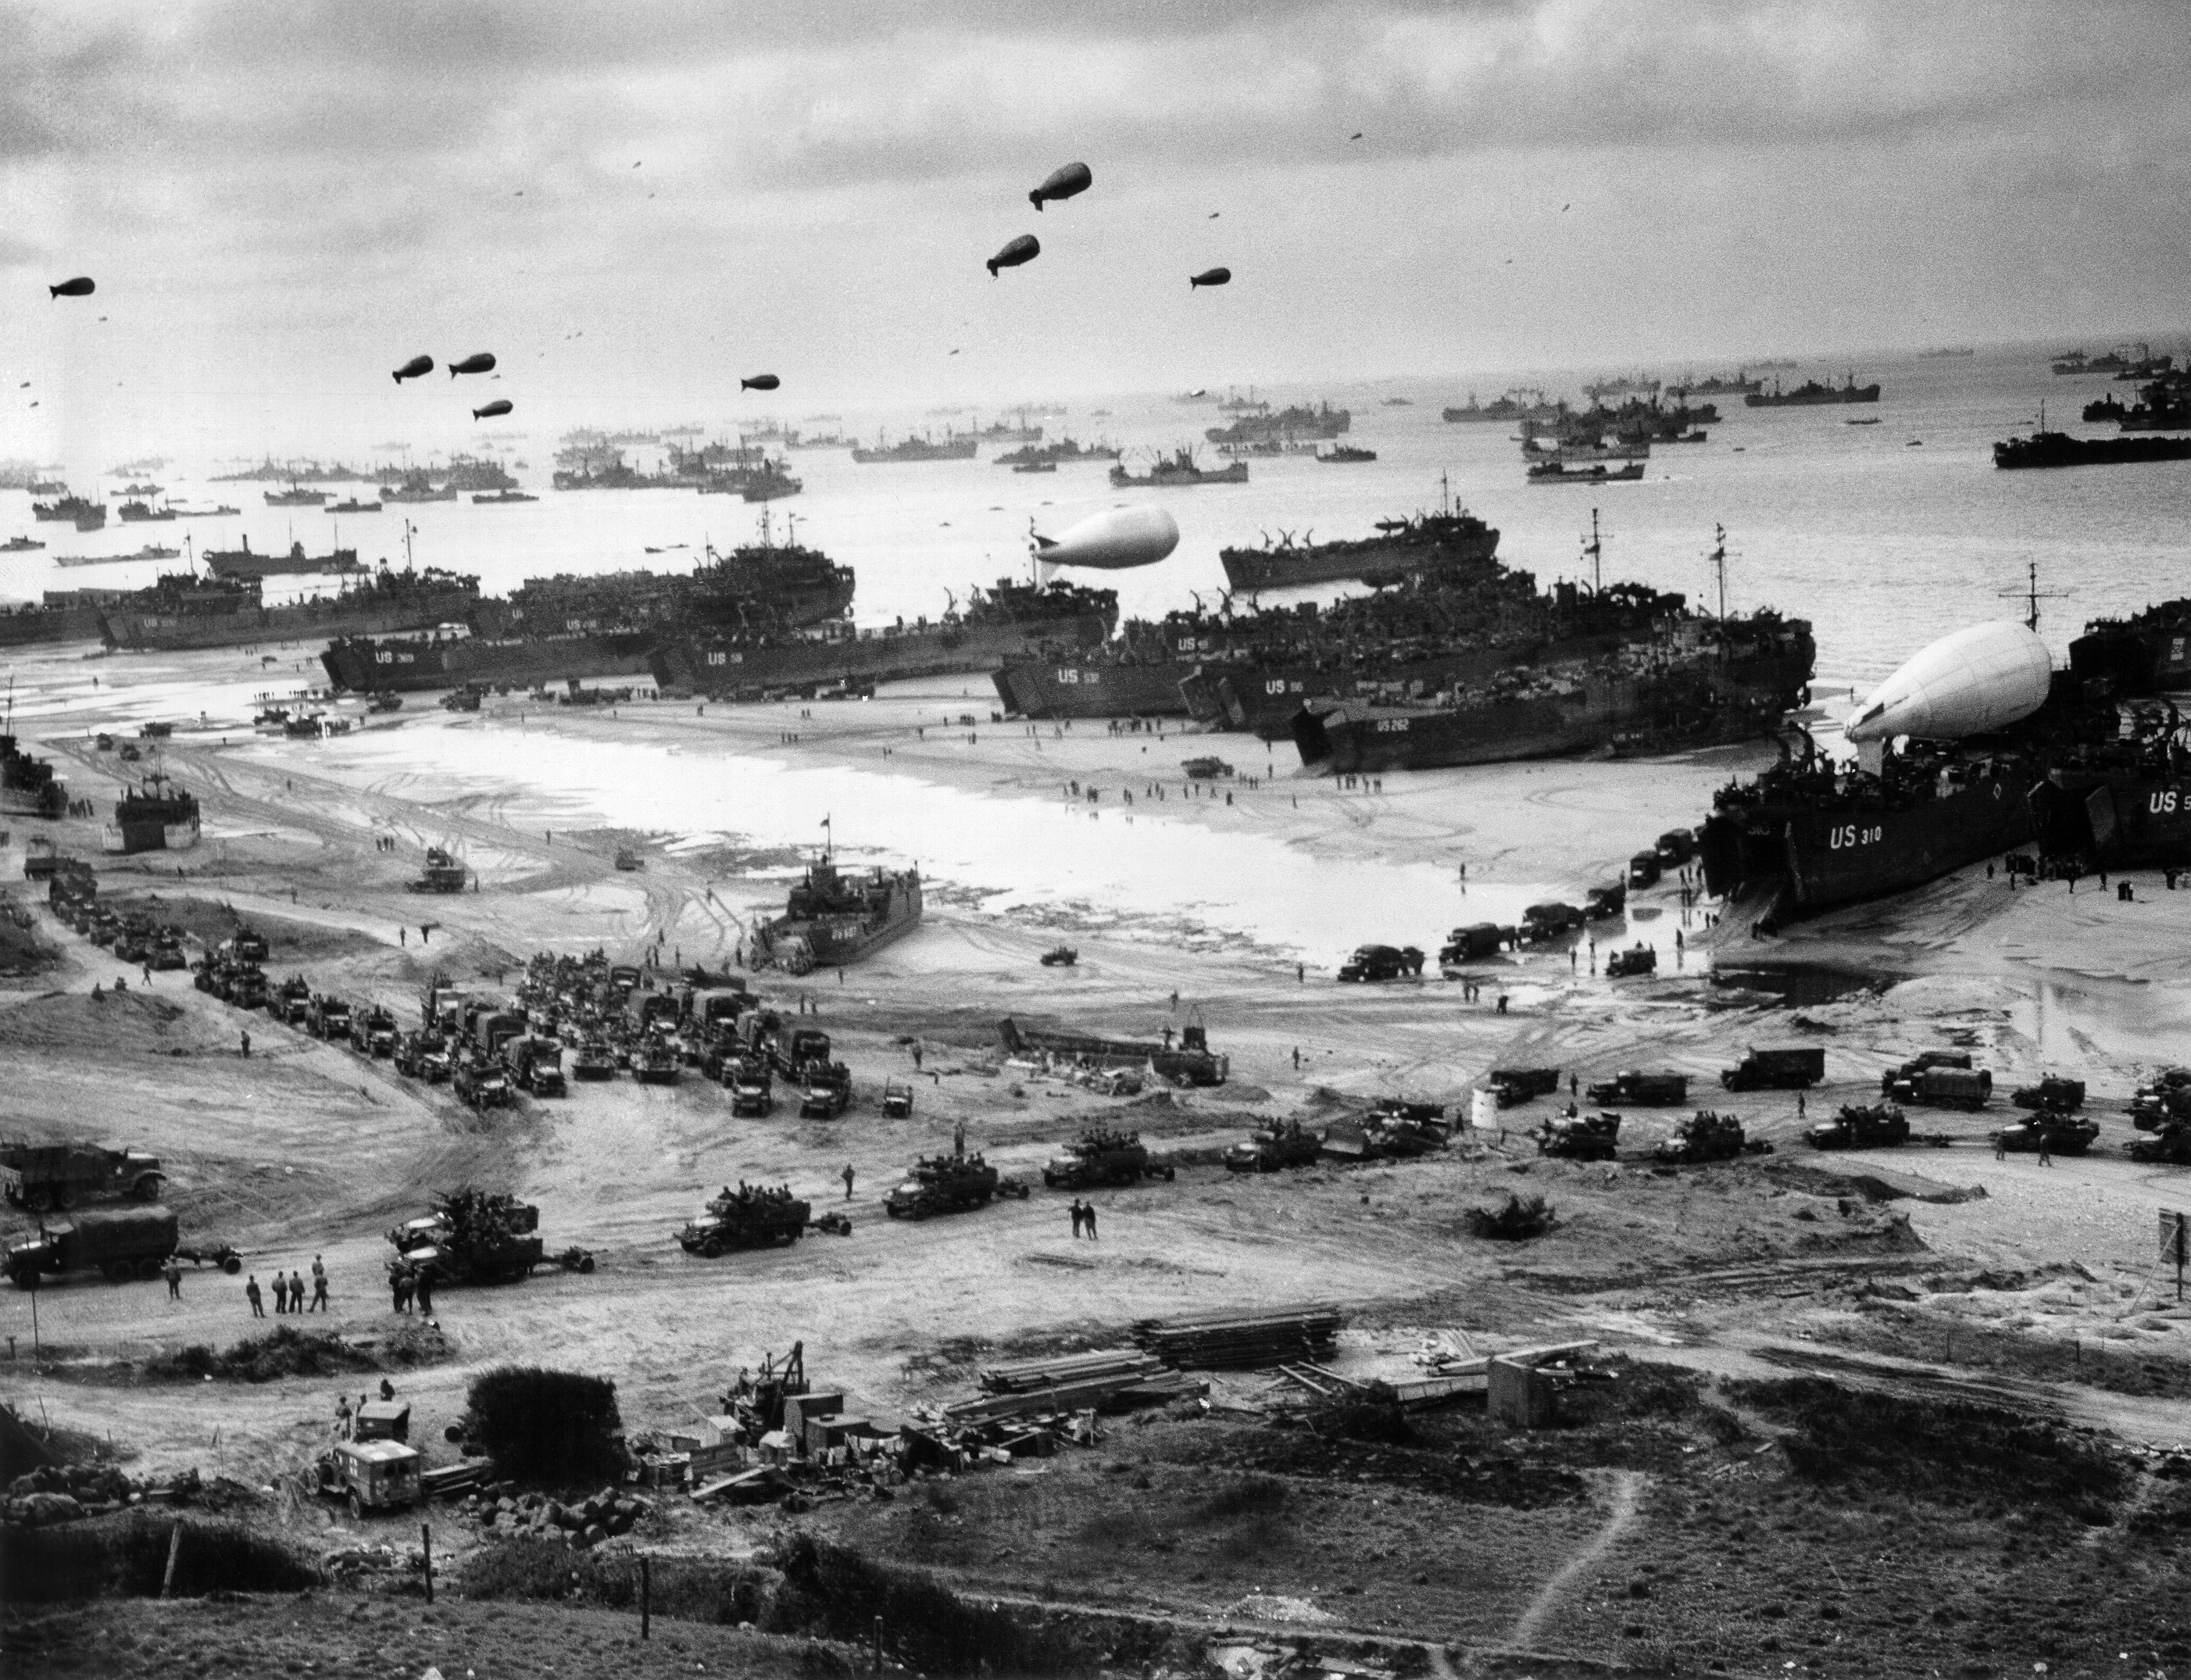 75th Anniversary of D-Day Photo 04